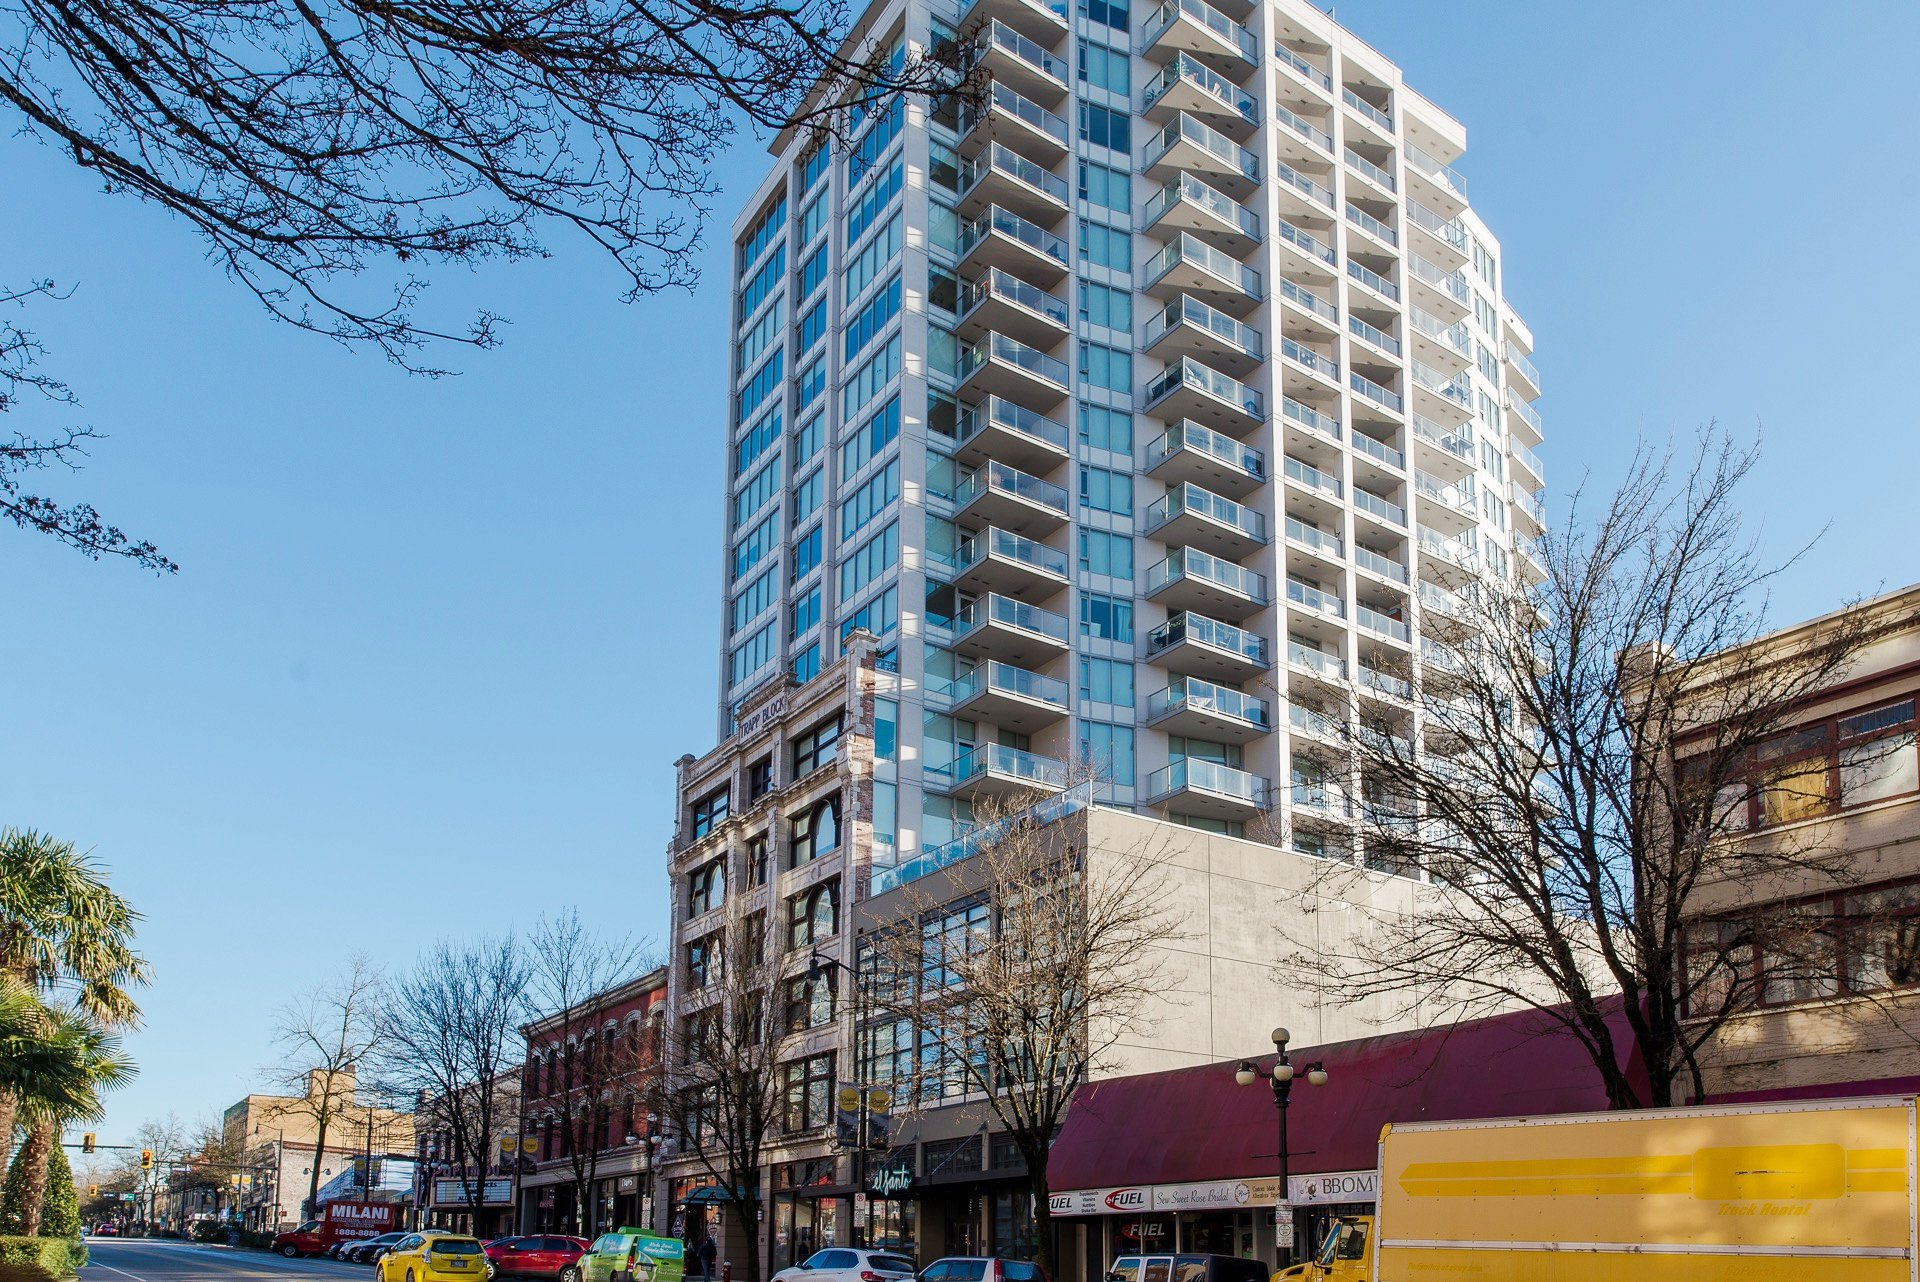 """Main Photo: 1008 668 COLUMBIA Street in New Westminster: Quay Condo for sale in """"Trapp & Holbrook"""" : MLS®# R2226399"""